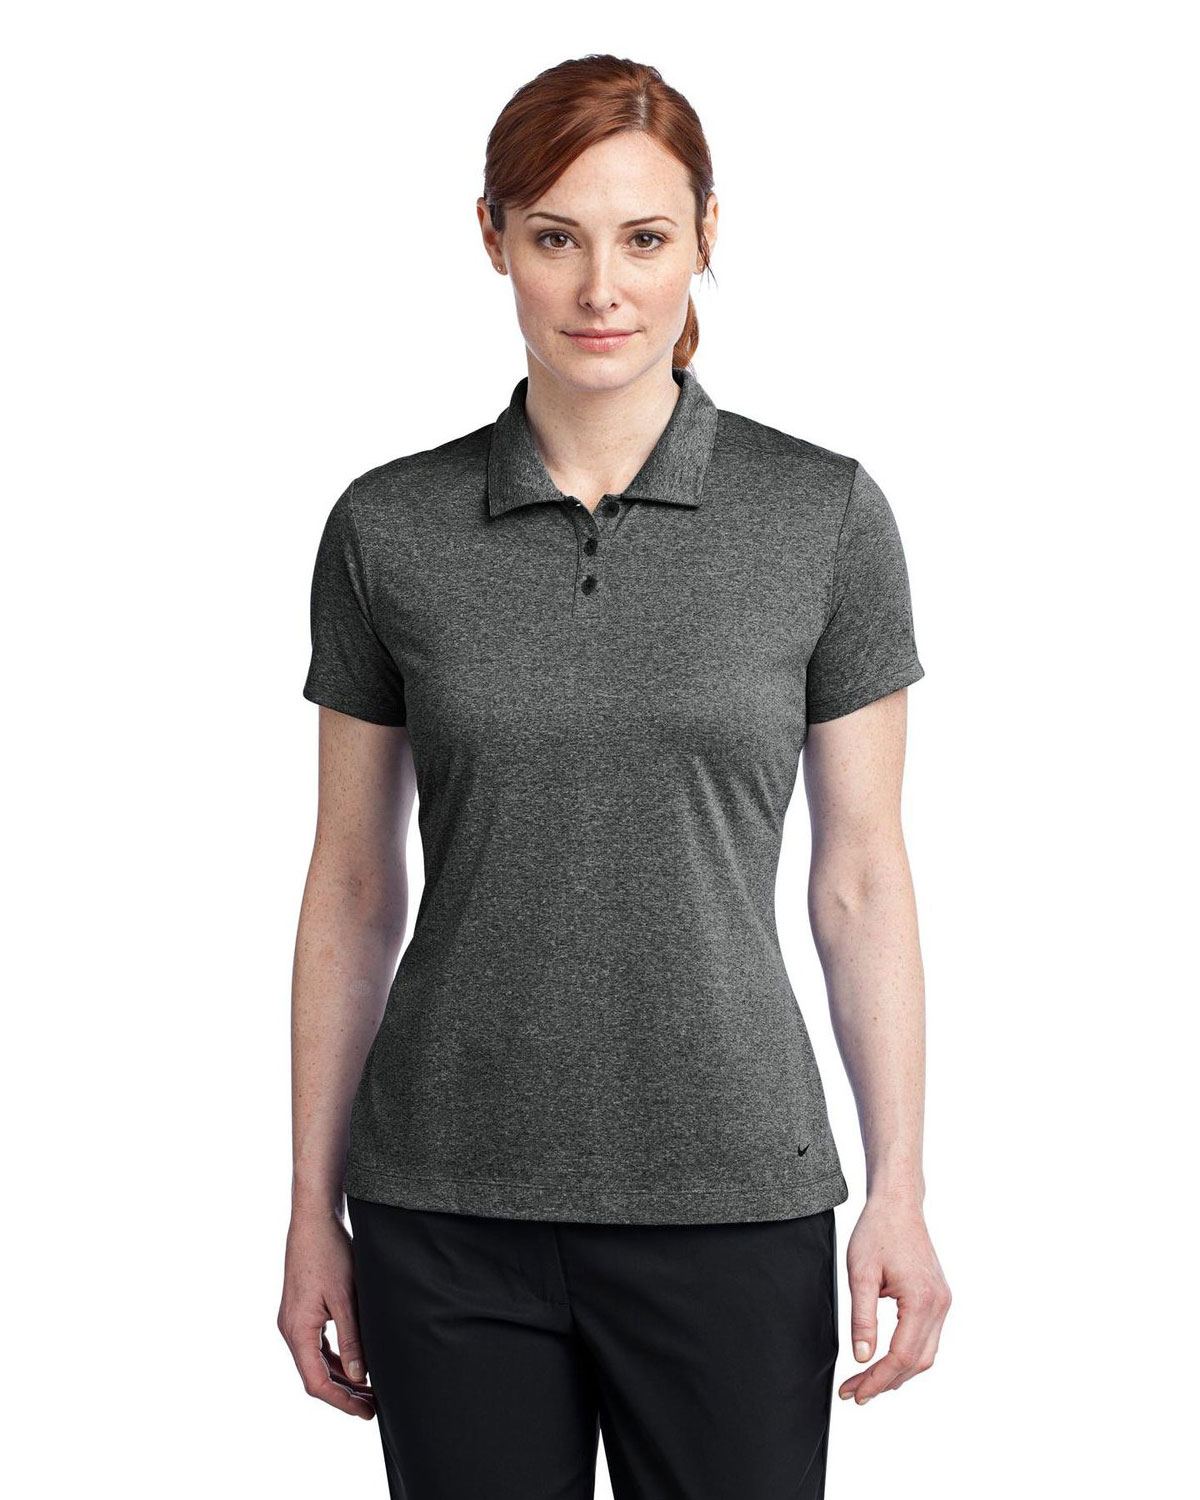 LADIES' DRI-FIT HEATHER POLOS